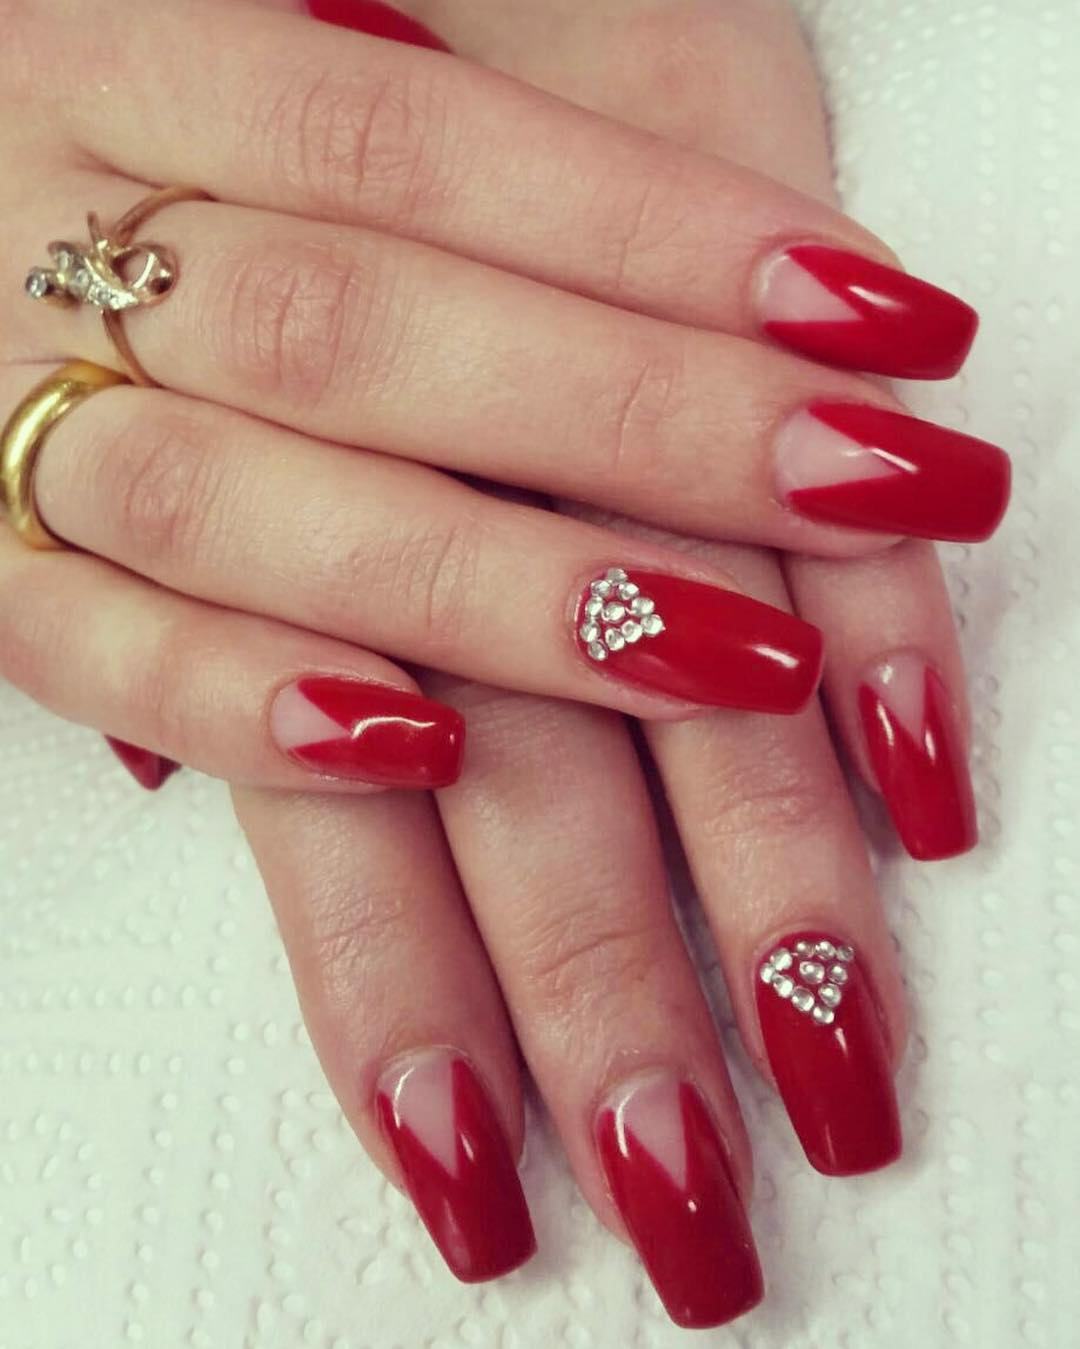 Red Nail Art Design Images Finger Designs Ideas Trends Premium Psd